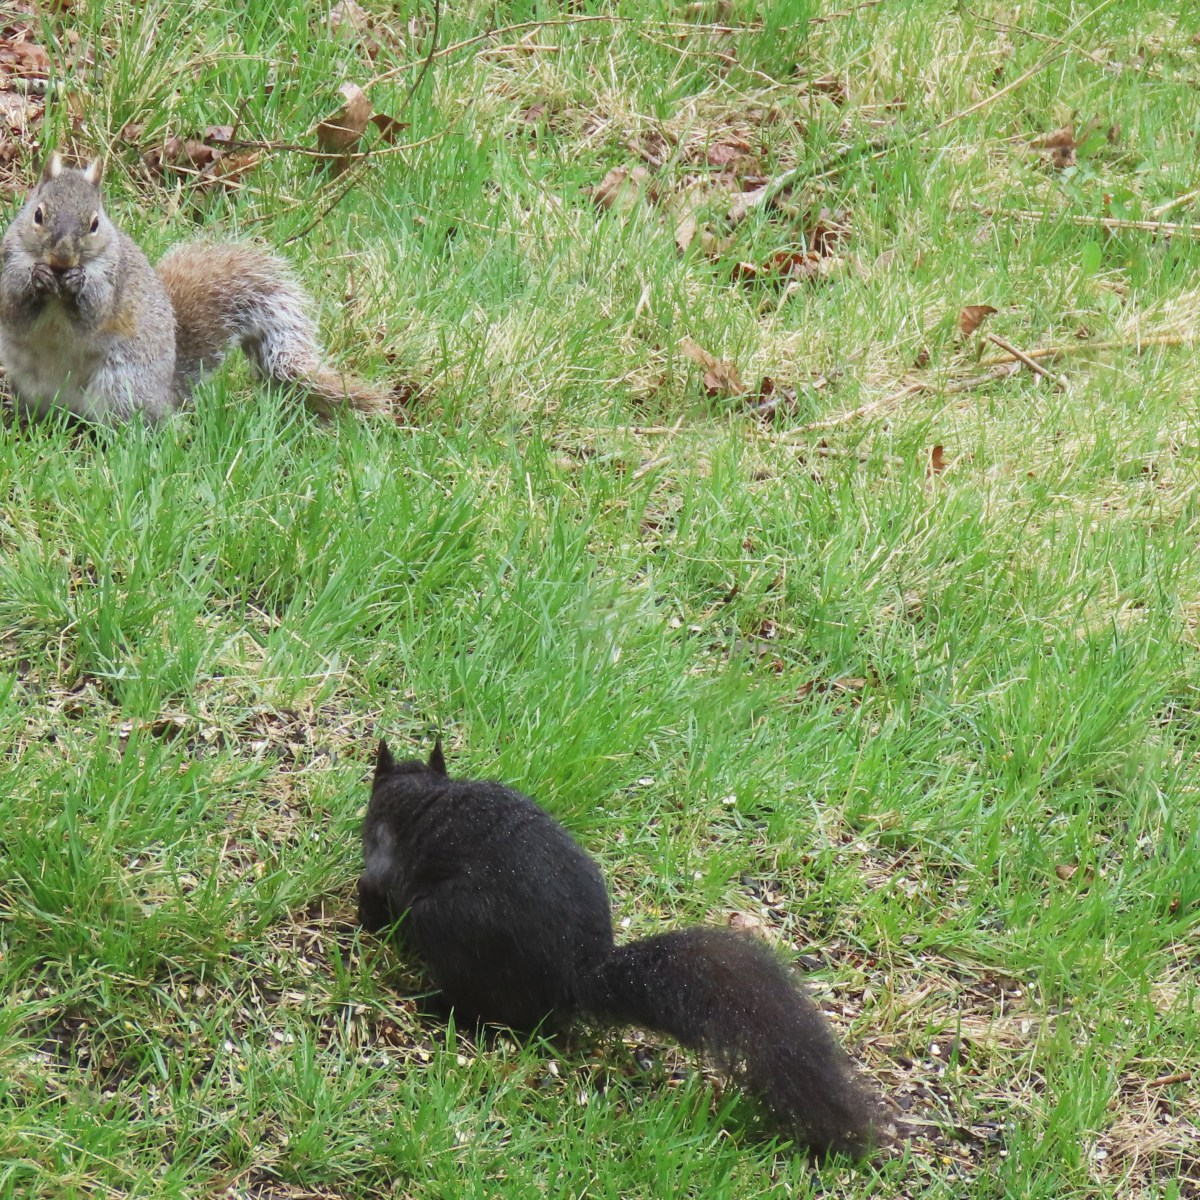 Two gray squirrels, one gray and one black, search for food in the grass